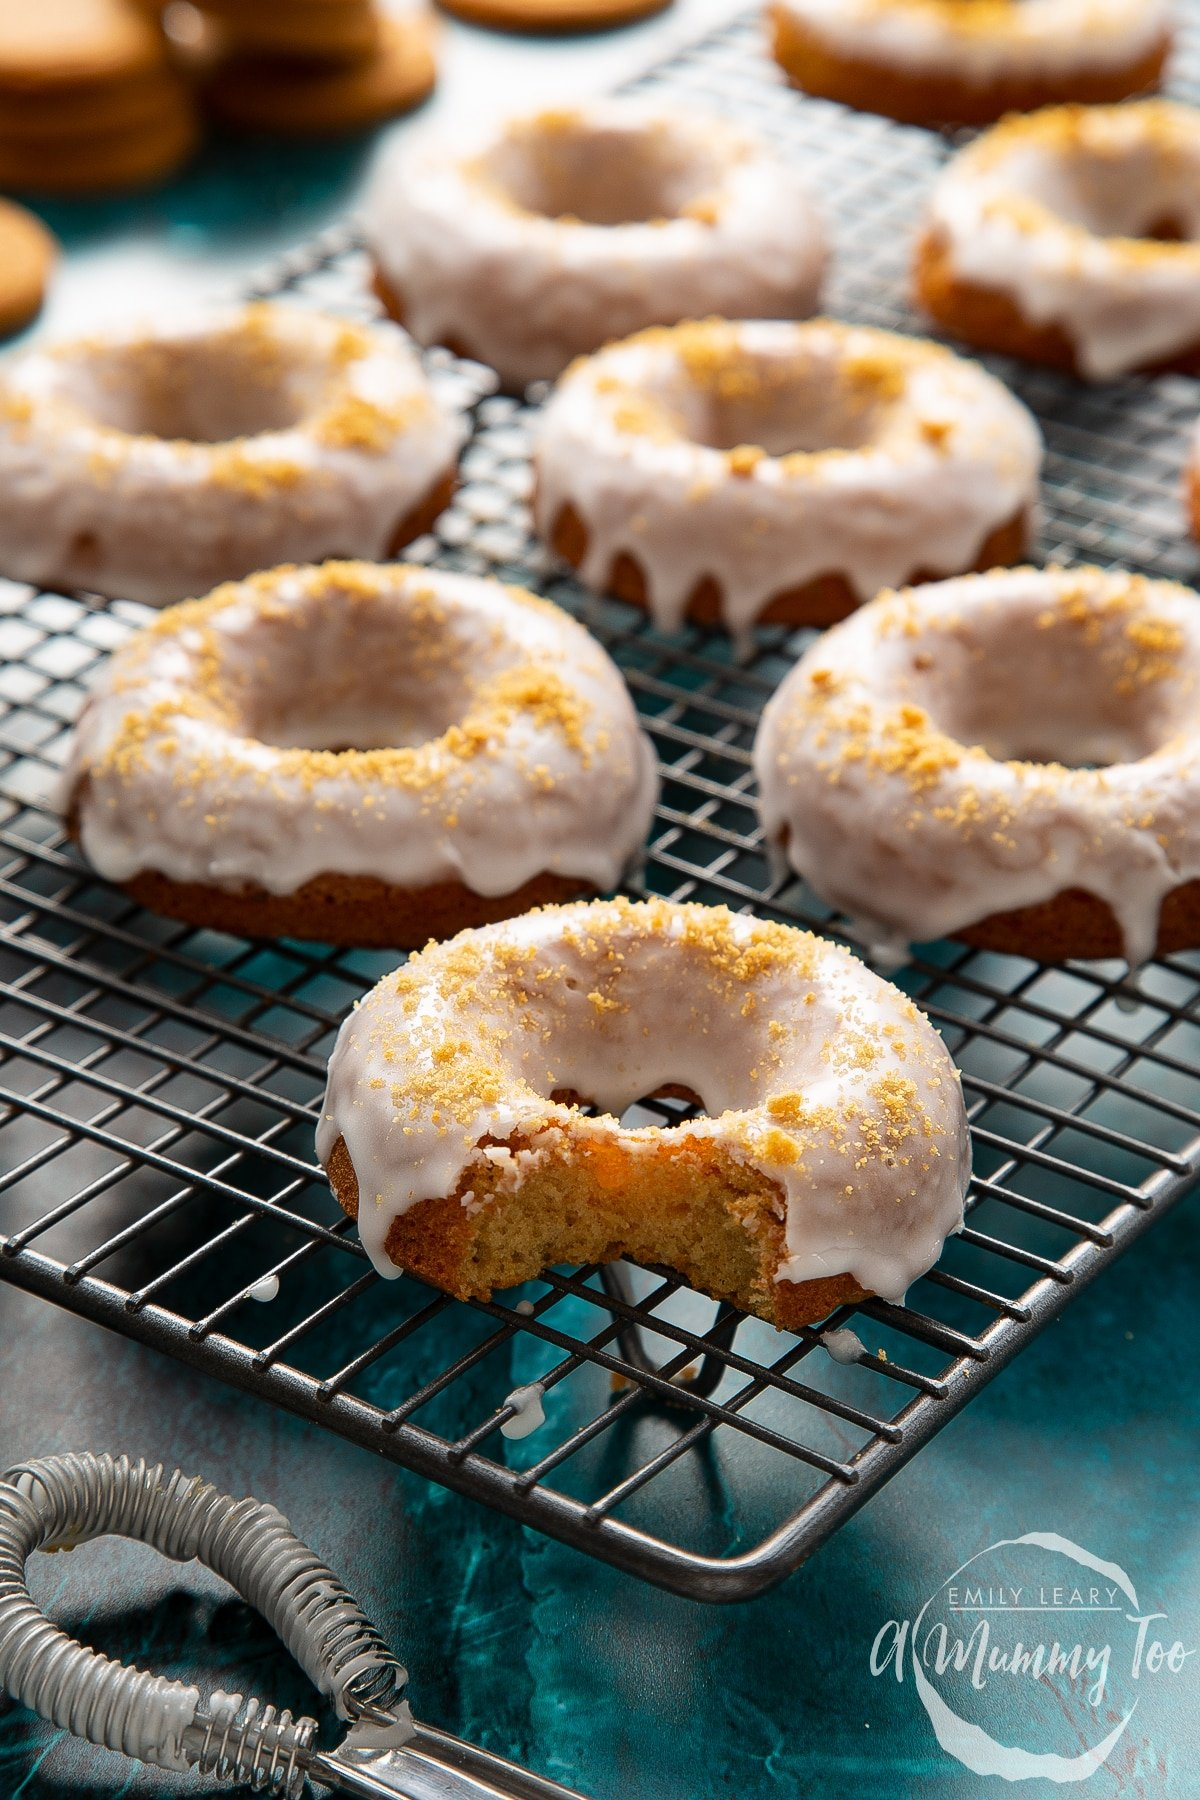 Baked gingerbread donuts with a lemon glaze on a wire cooling rack. One has a bite out of it.